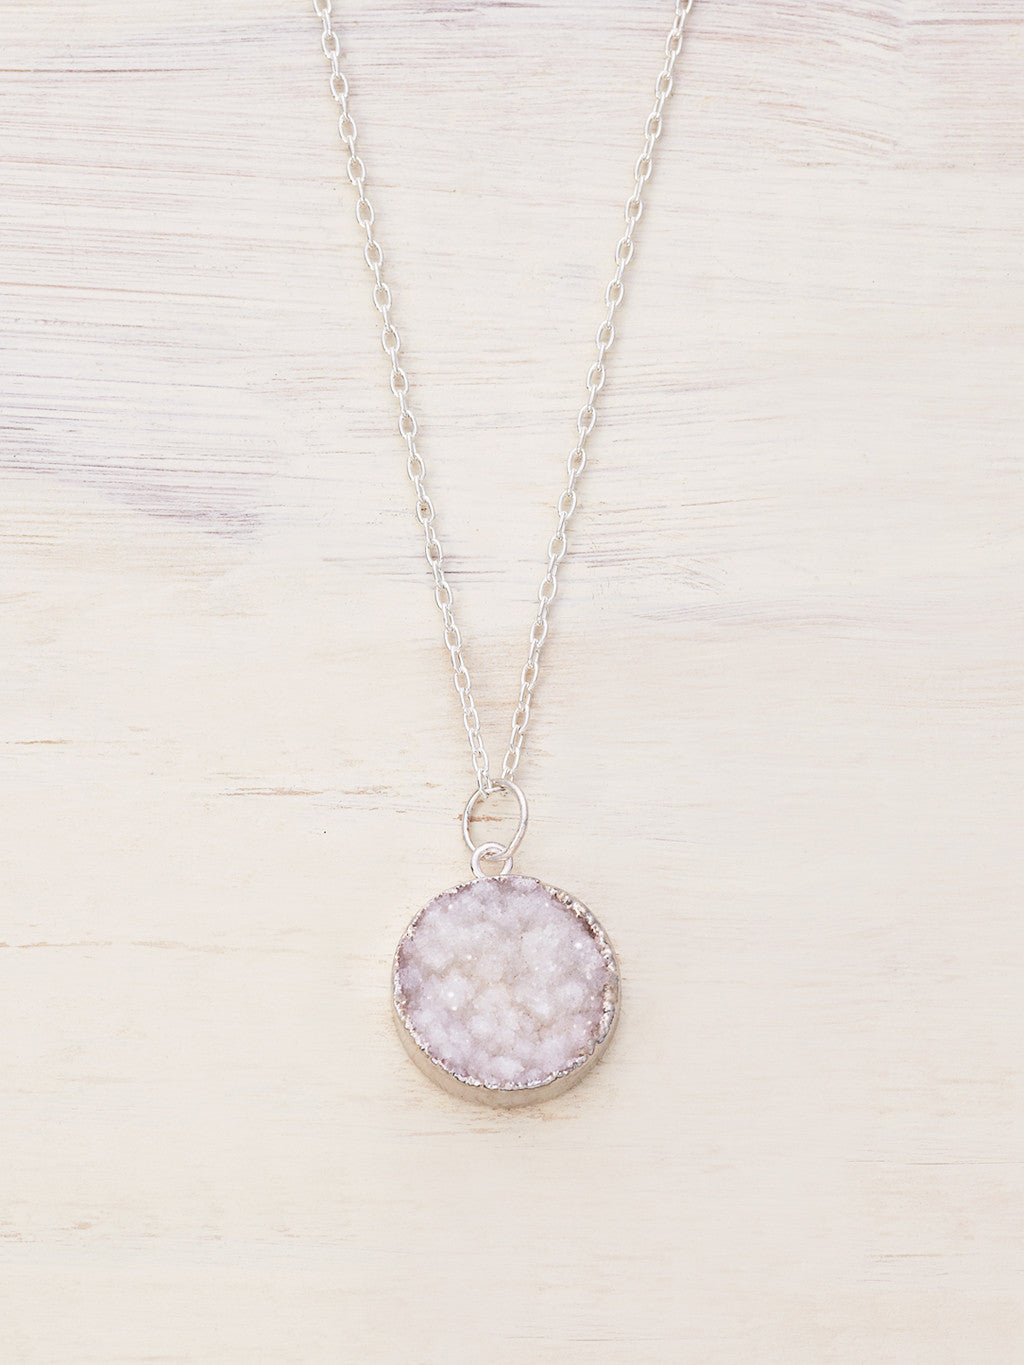 Small Round Druzy Necklace - White